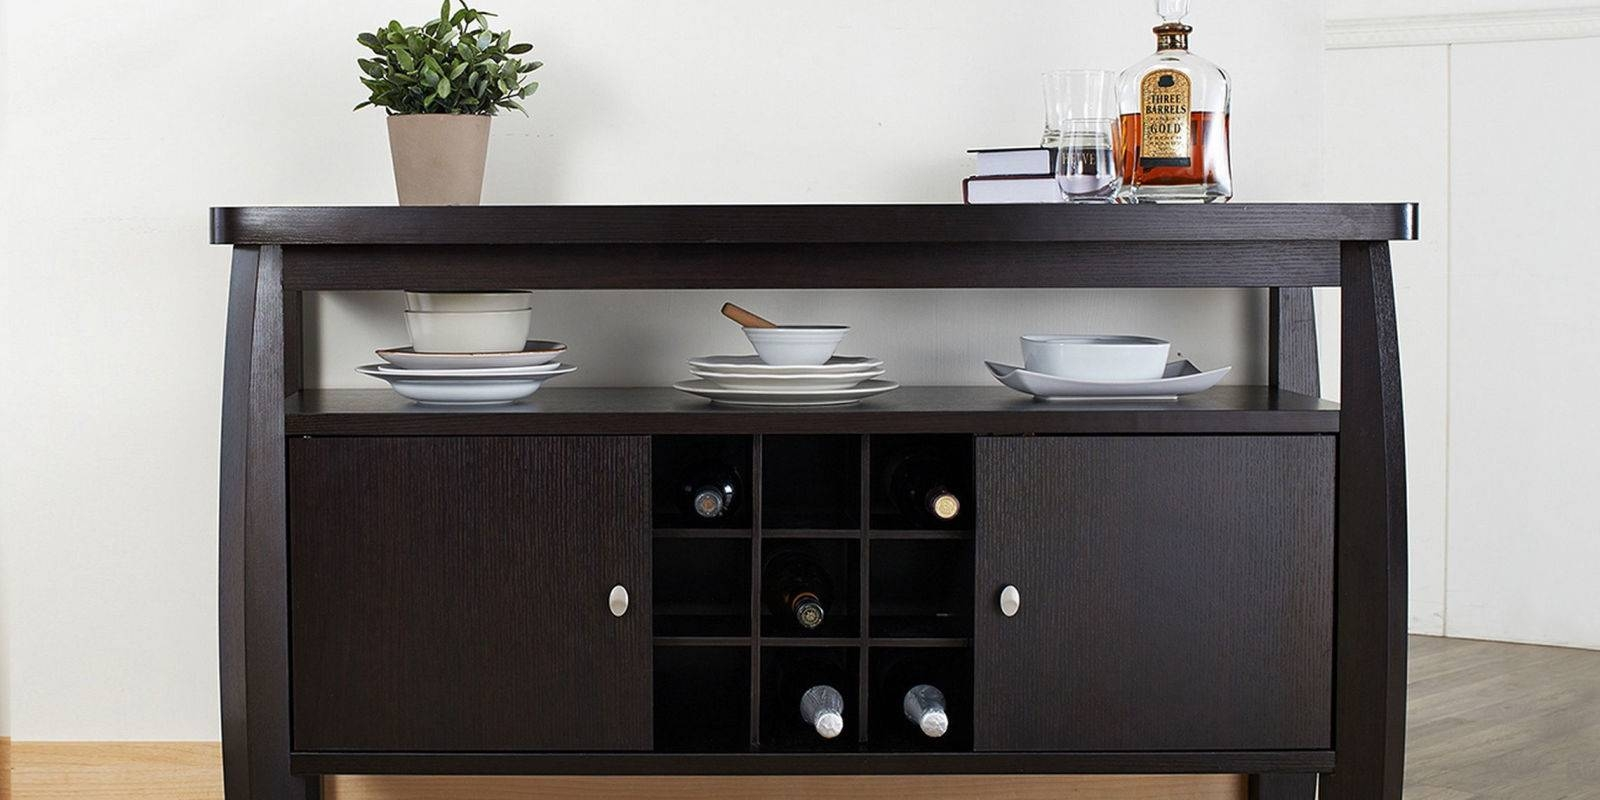 11 Best Sideboards And Buffets In 2018 – Reviews Of Sideboards Within Sideboards And Tables (View 2 of 15)